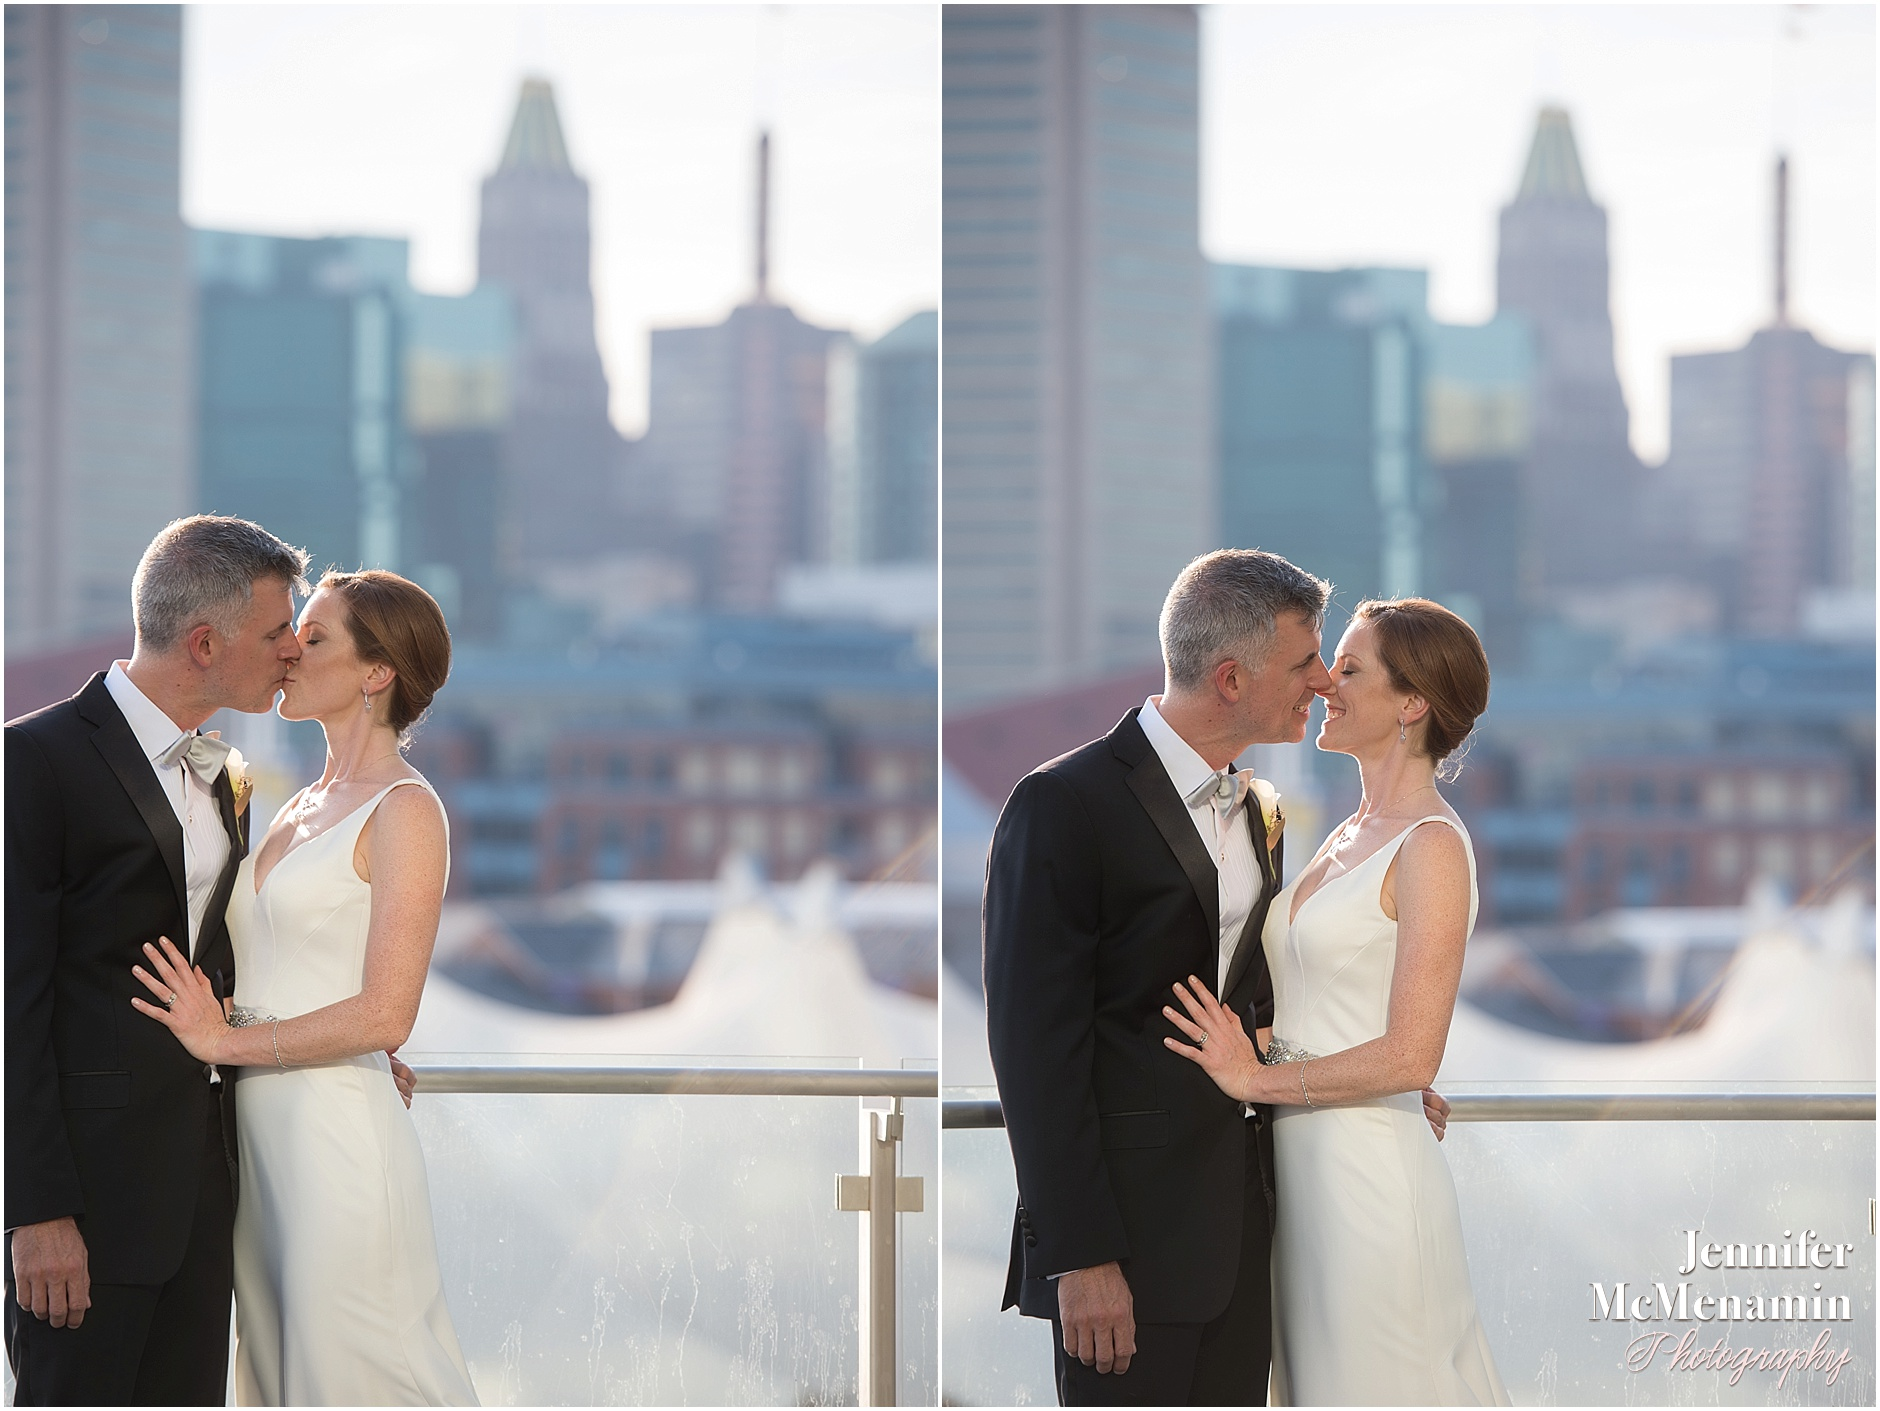 046-Four-Seasons-Baltimore-wedding-Jennifer-McMenamin-Photography